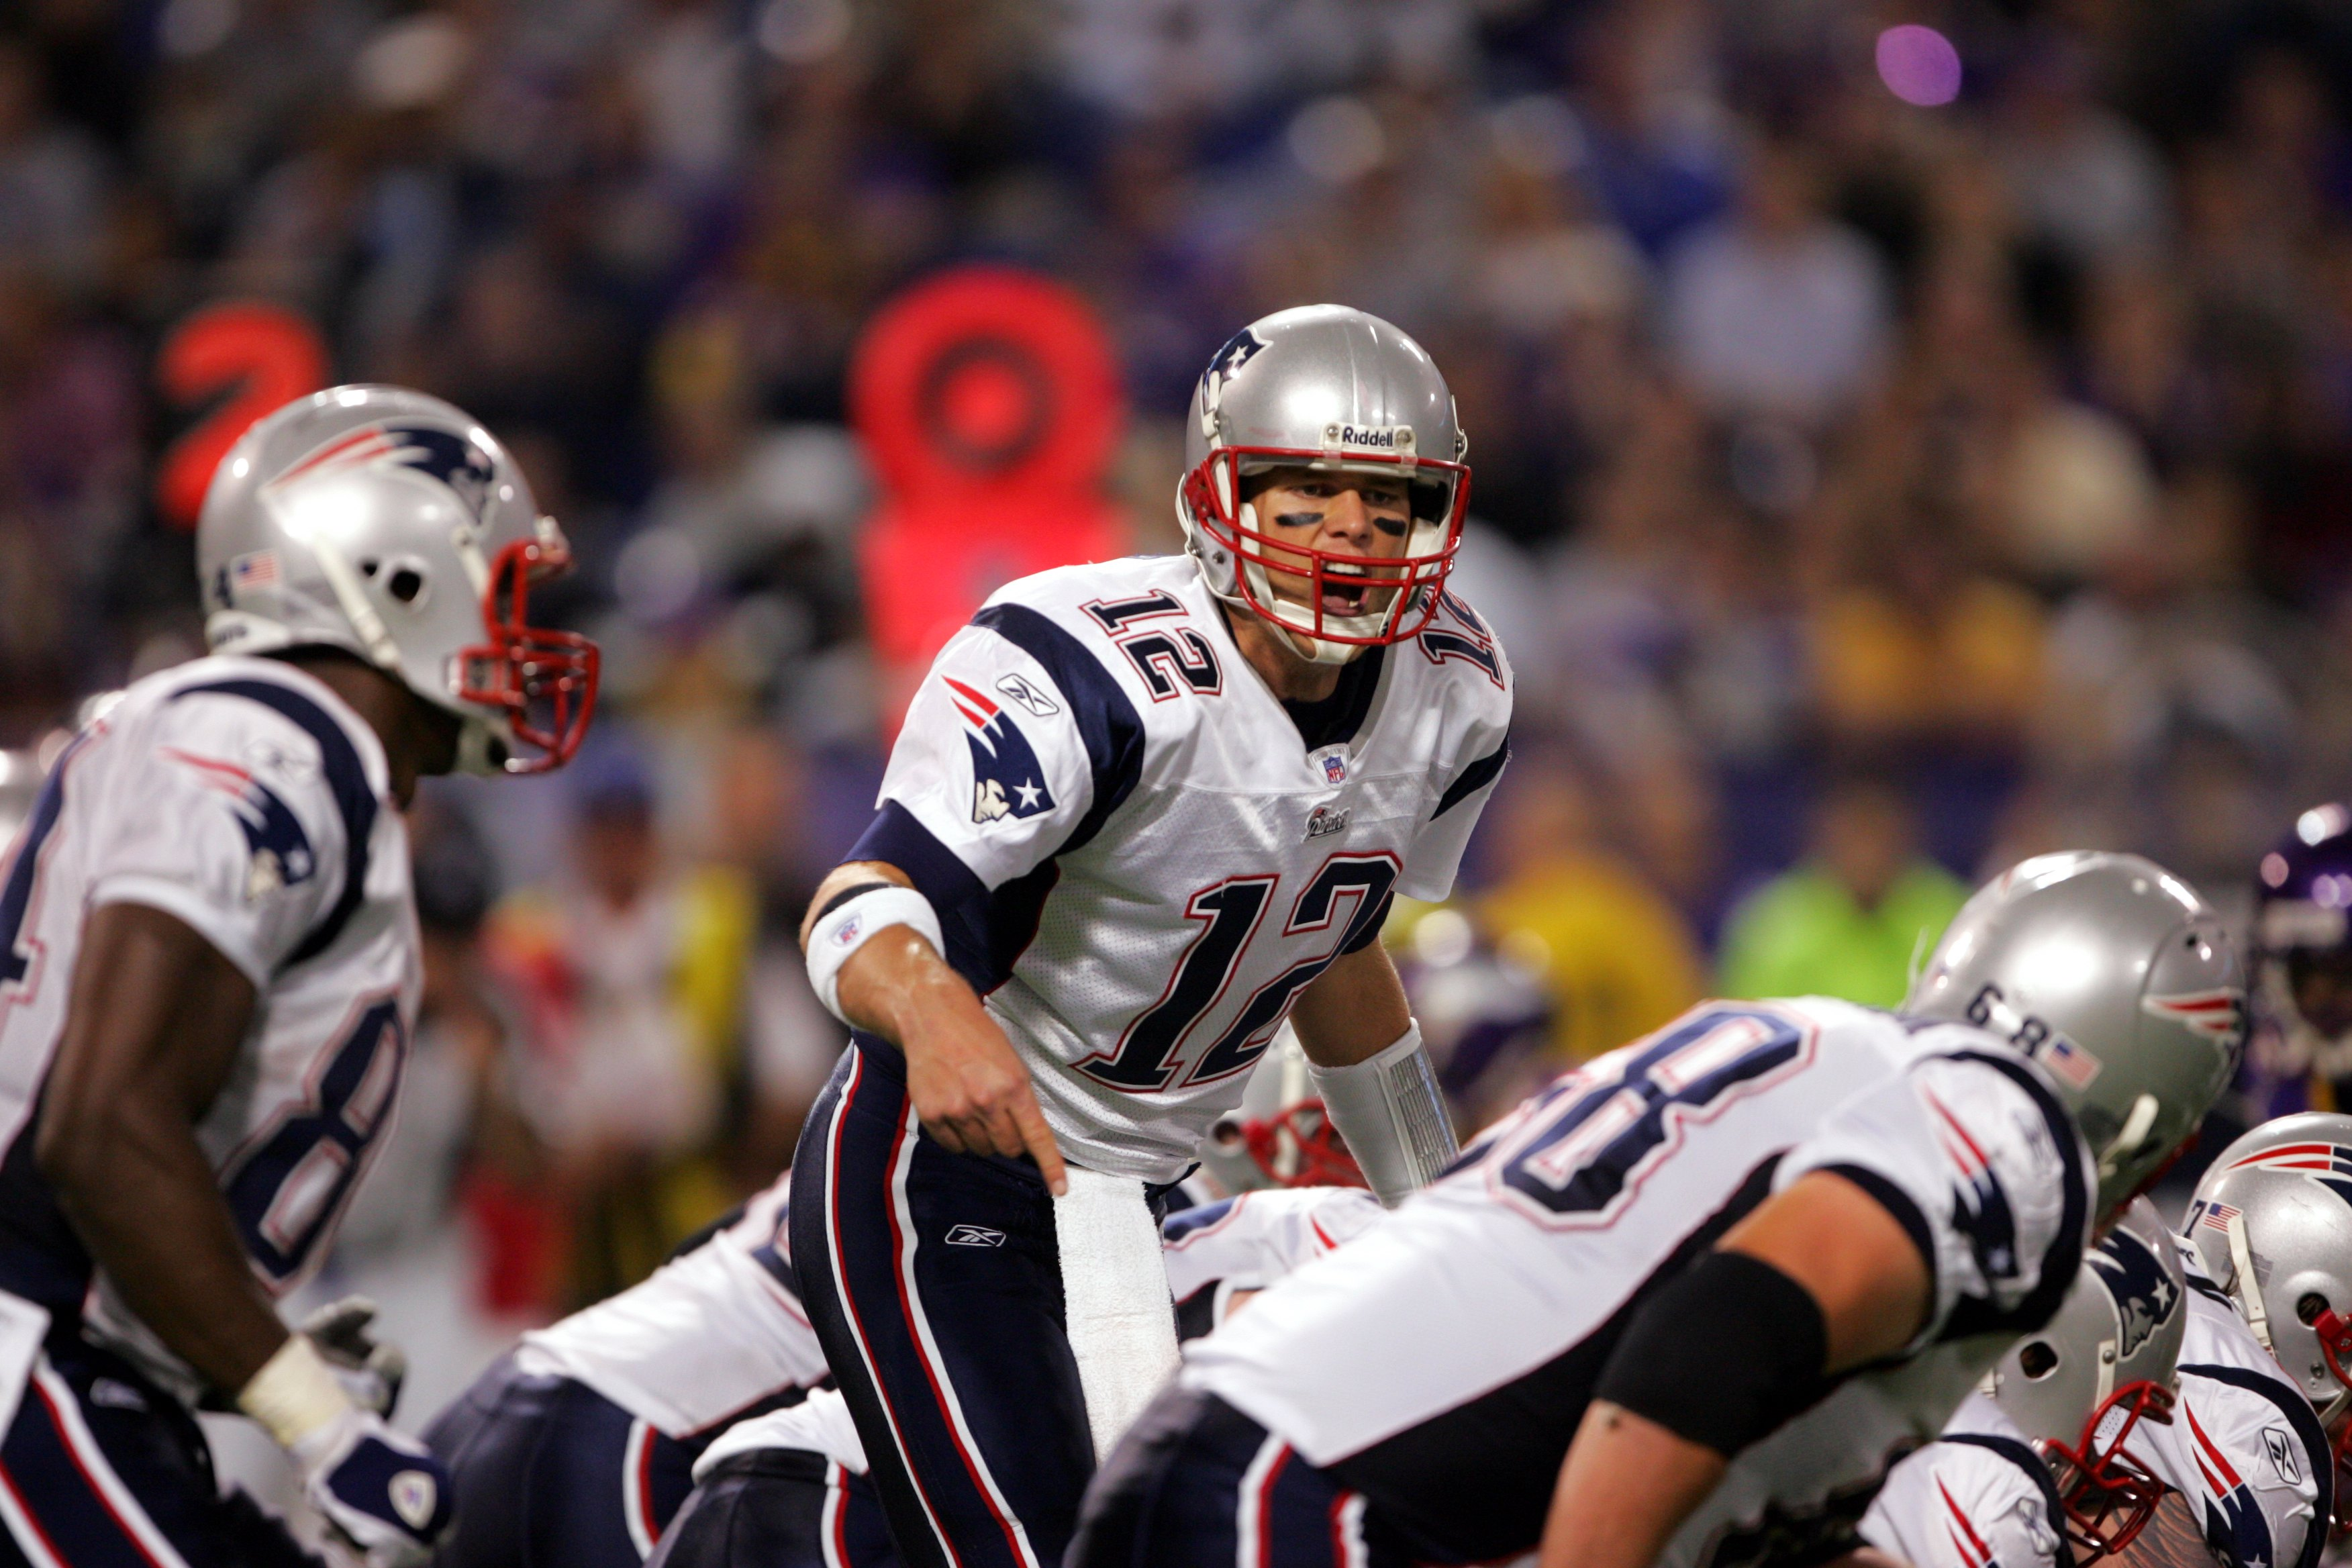 MINNEAPOLIS, MN - OCTOBER 30:  Quarterback Tom Brady #12 of the New England Patriots calls a play during the game against the Minnesota Vikings on October 30, 2006 at the Metrodome in Minneapolis, Minnesota. The Patriots won 31-7. (Photo by Stephen Dunn/G